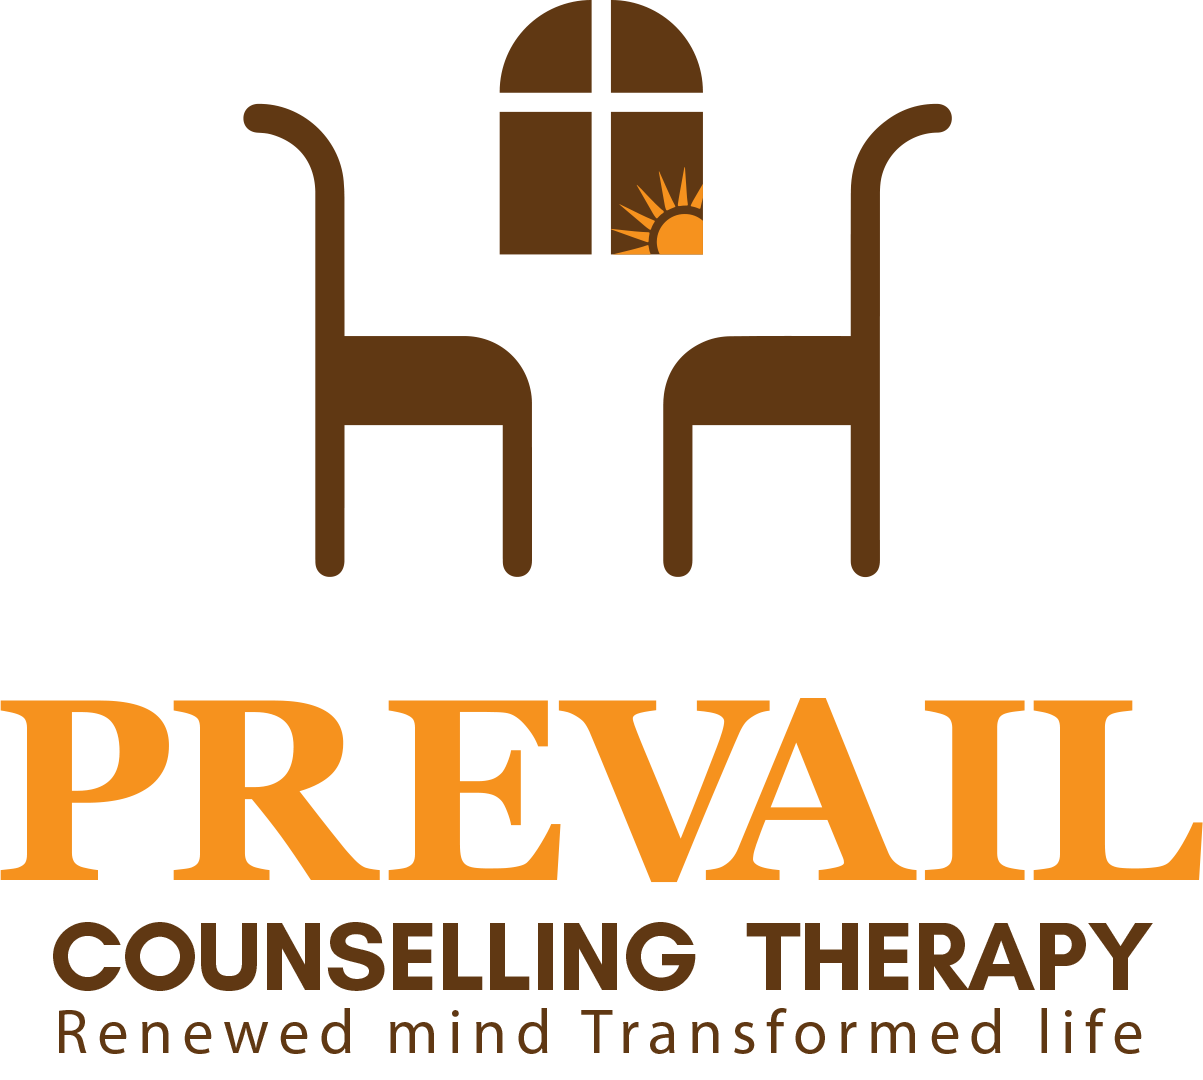 Prevail Counselling Therapy